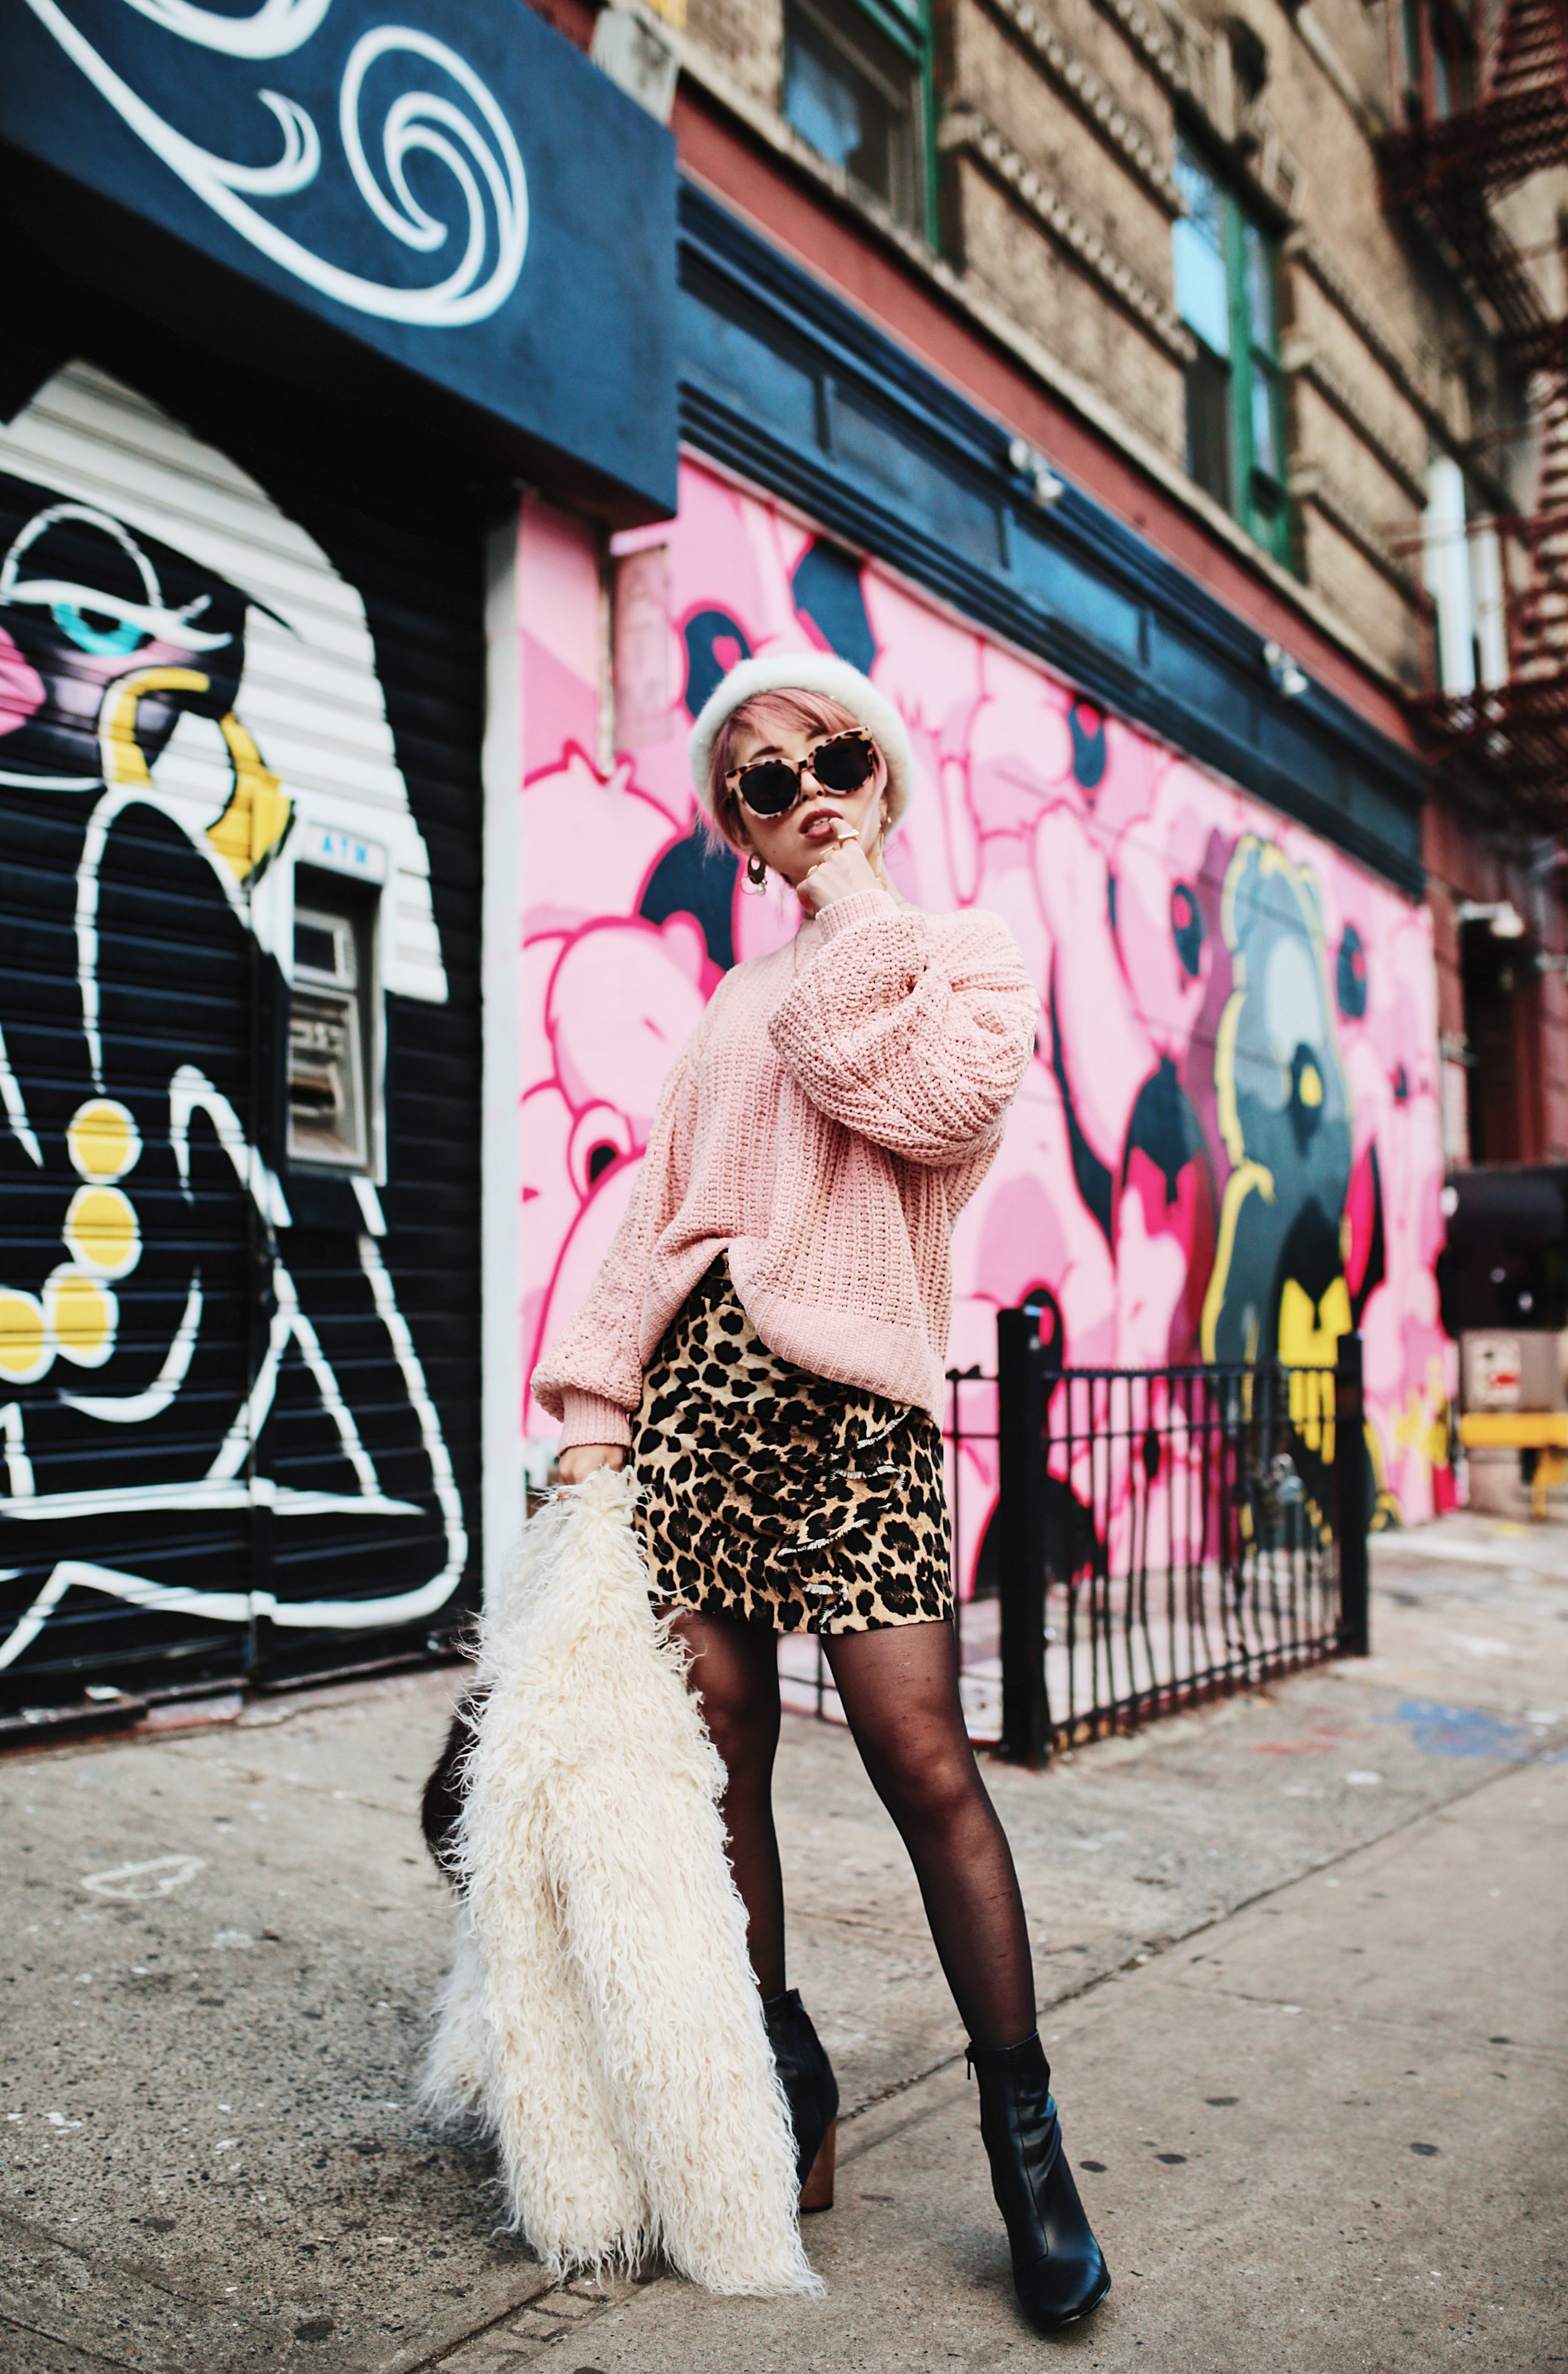 H&M Pink Sweater-Zara leopar prins mini skirt-H&M white shaggy coat-DVF fur bag-anthropologie white beret-Urban Outfitters Sunglasses-ALDO Ankle Boots-Mango Earrings-Aikas Love Closet-New York City-Pink Hair-Style Fashion Blogger-Seattle-Japanese_Petite fashion blogger 22